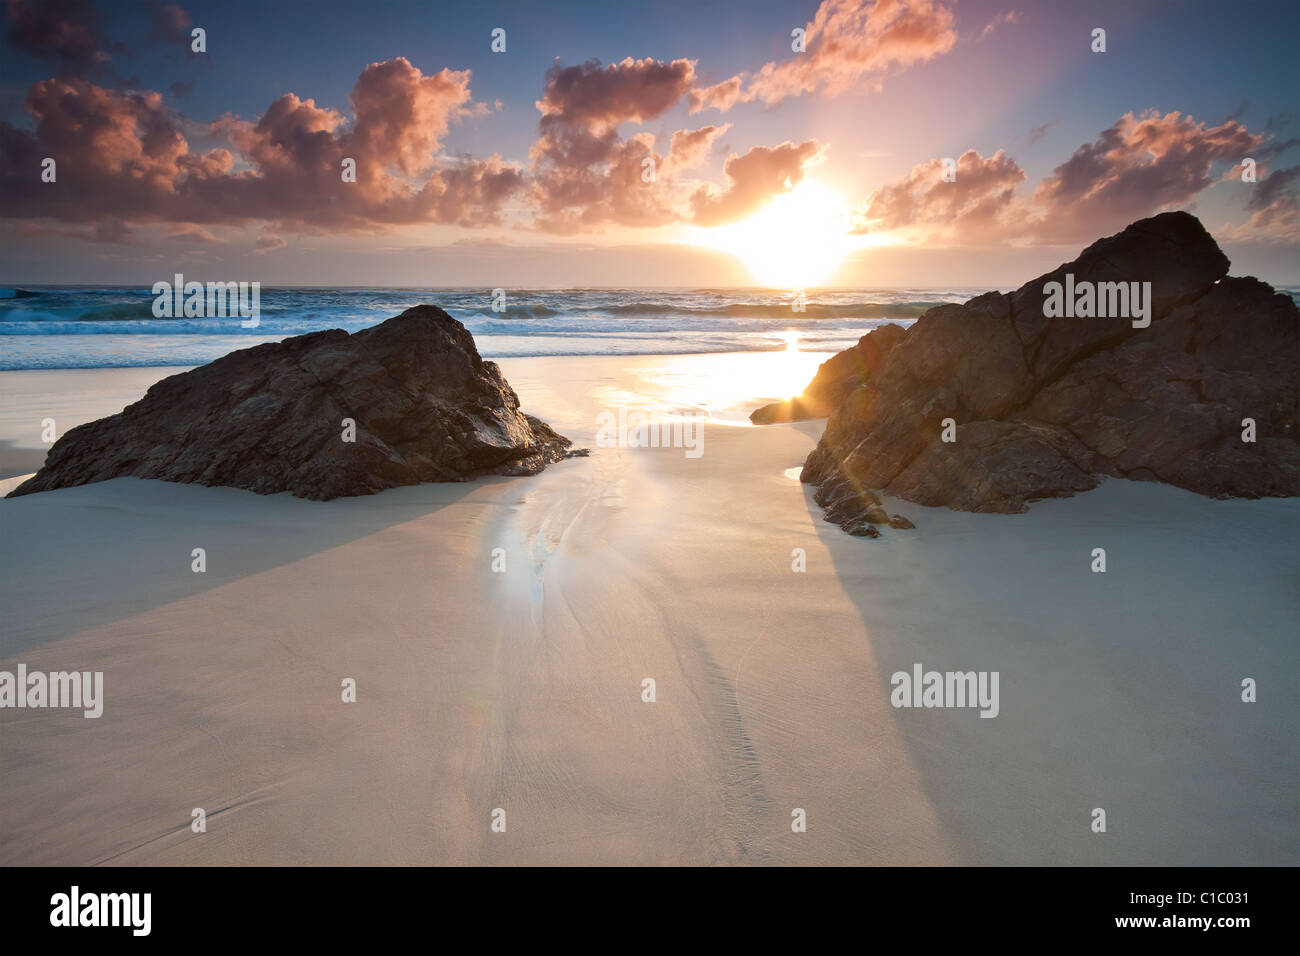 Seascape australienne au lever du soleil (Miami beach, Queensland, Australie) Photo Stock